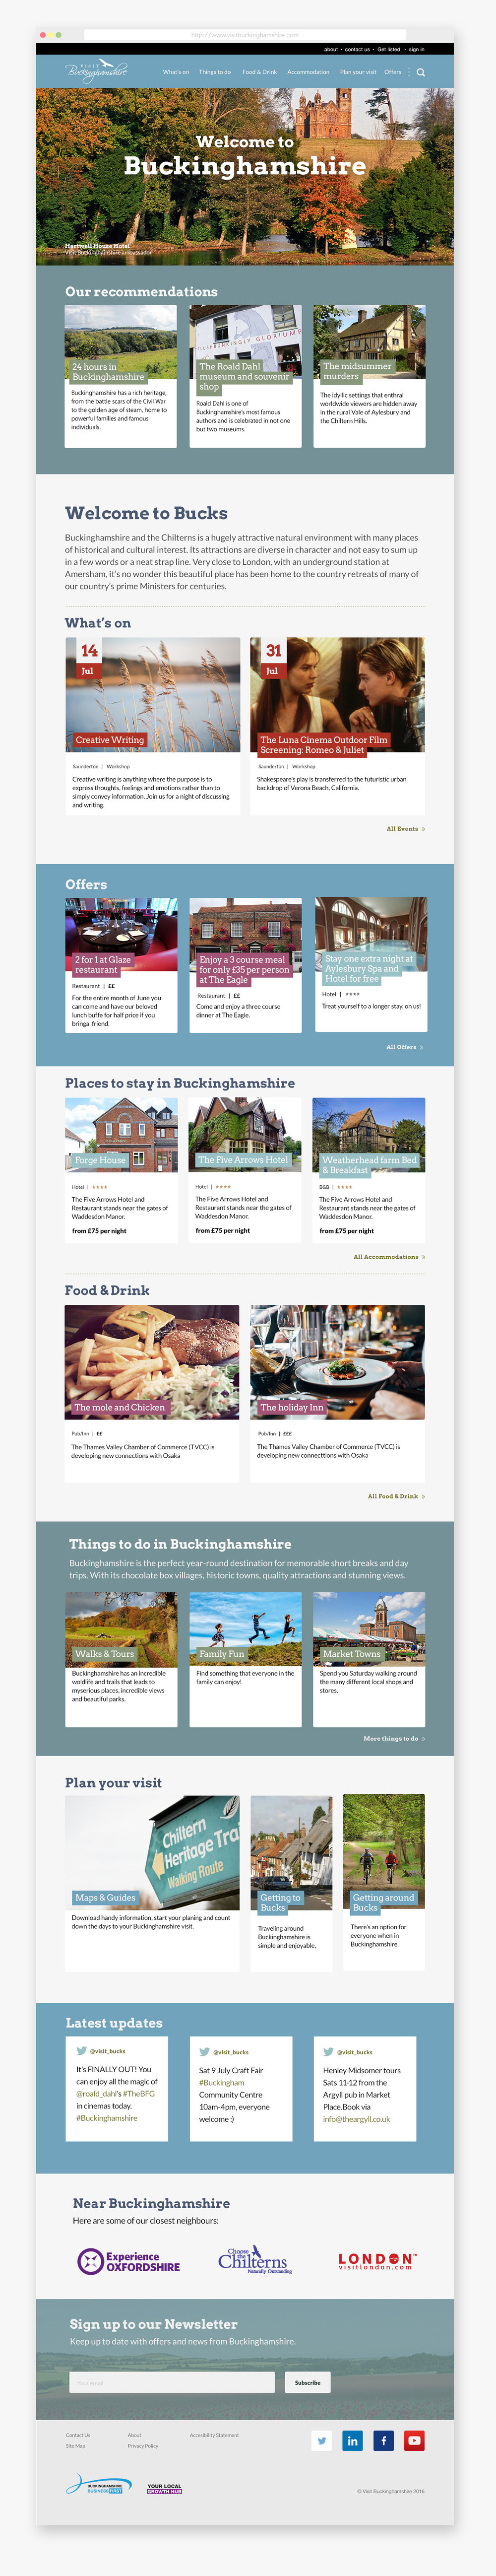 Visit-Buckinghamshire-homepage-furthermore-user-experience